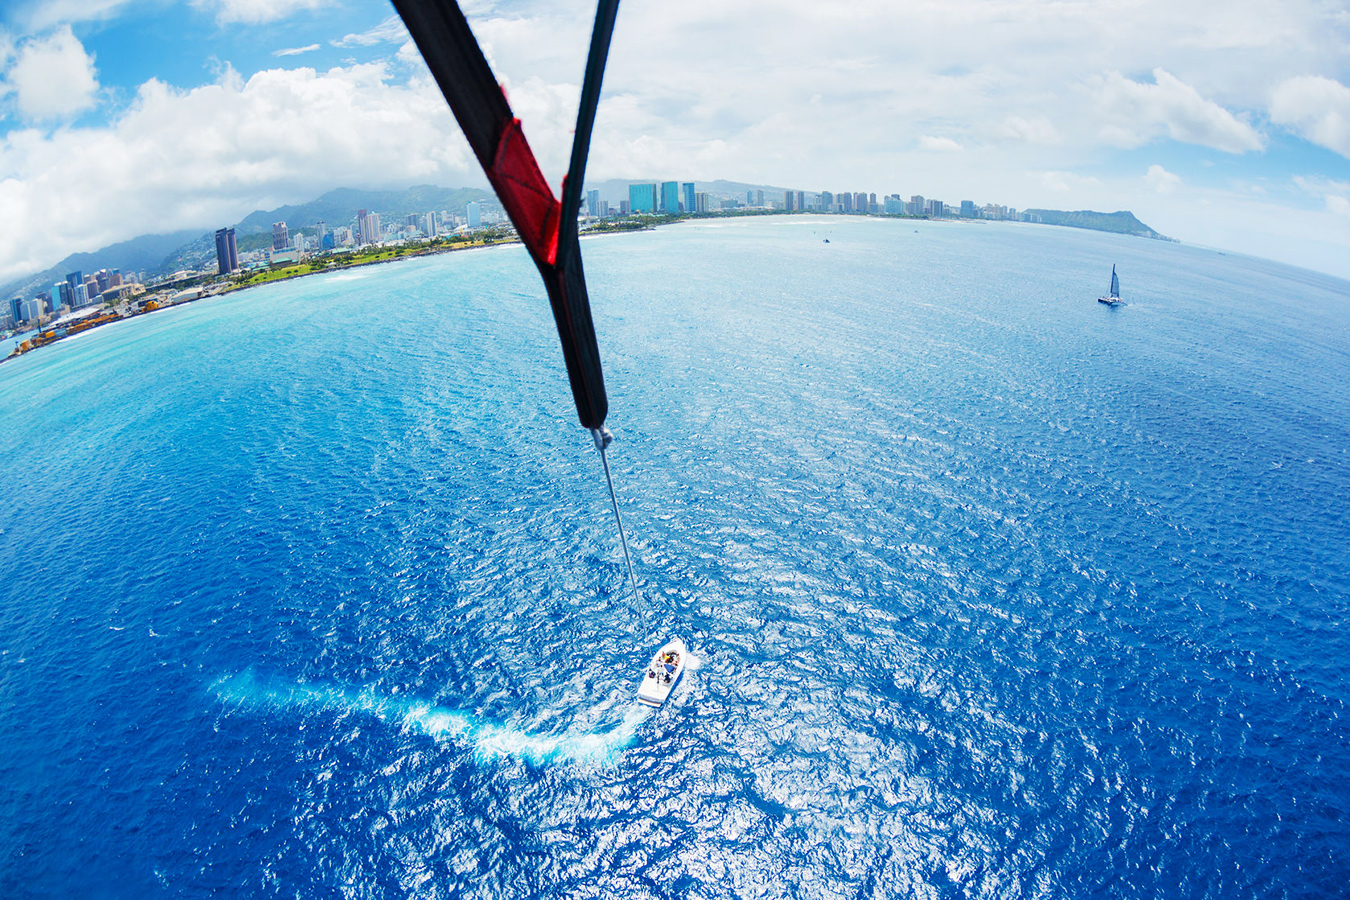 A wide-angle shot taken from a parasail